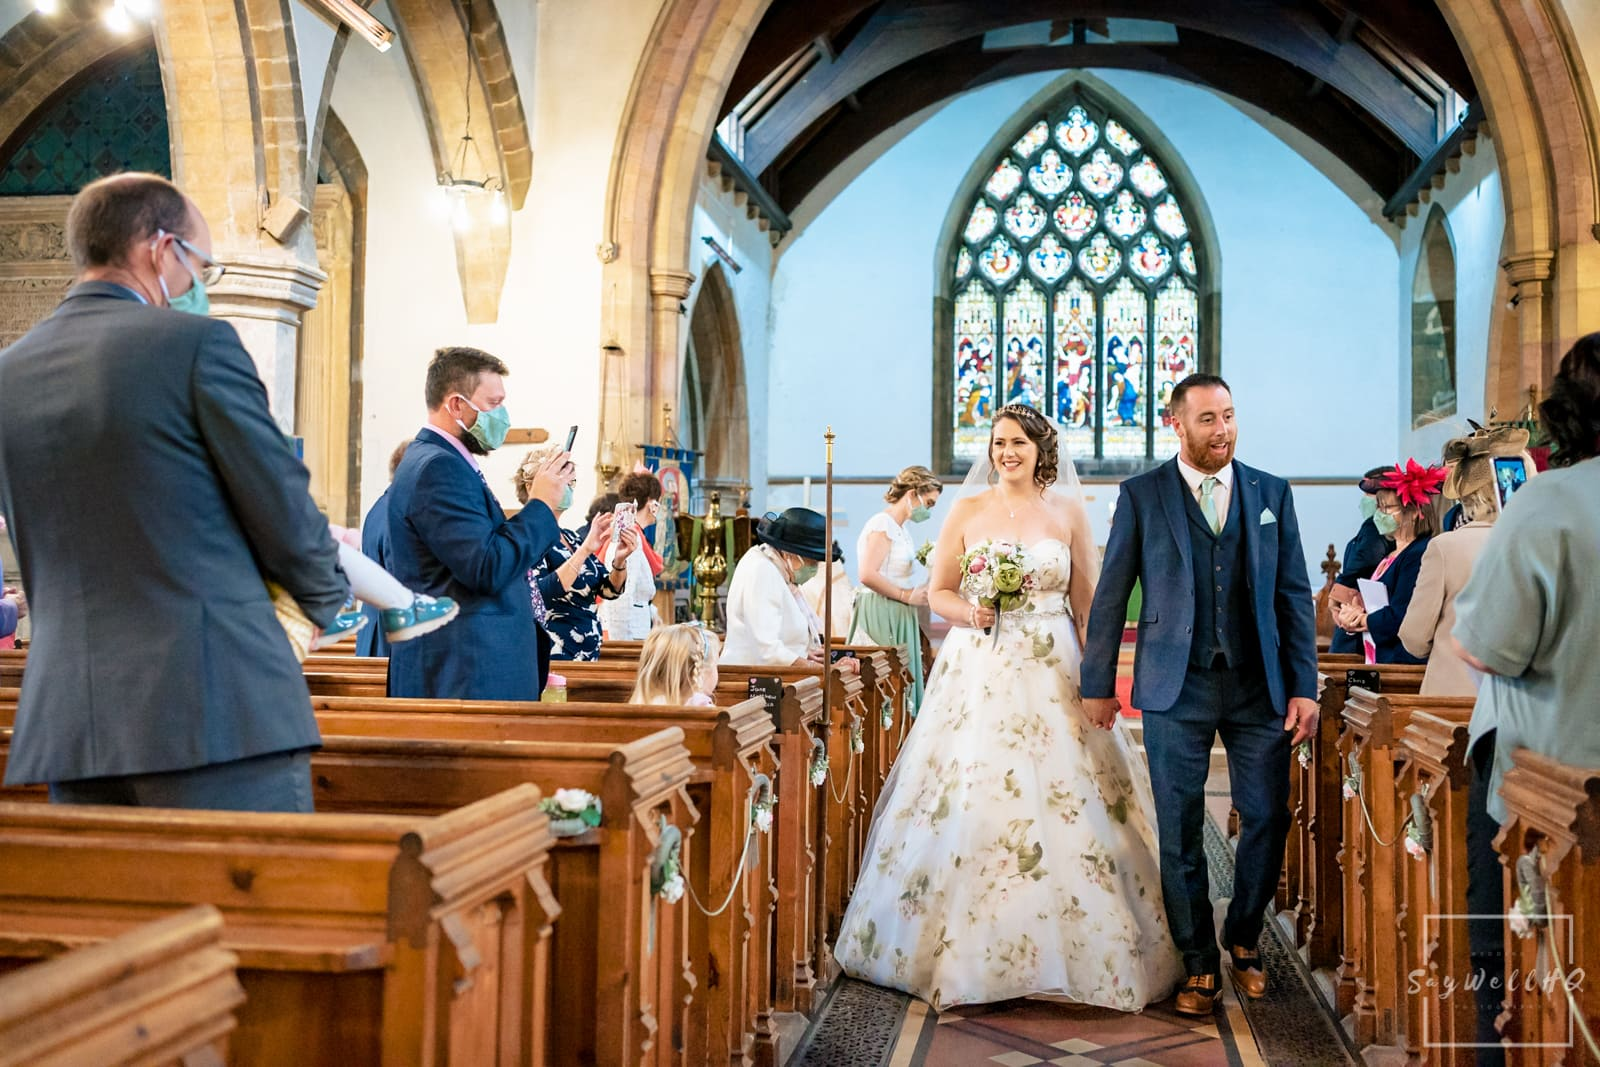 Lincoln wedding photographer - bride and groom walking down the aisle as husband and wife